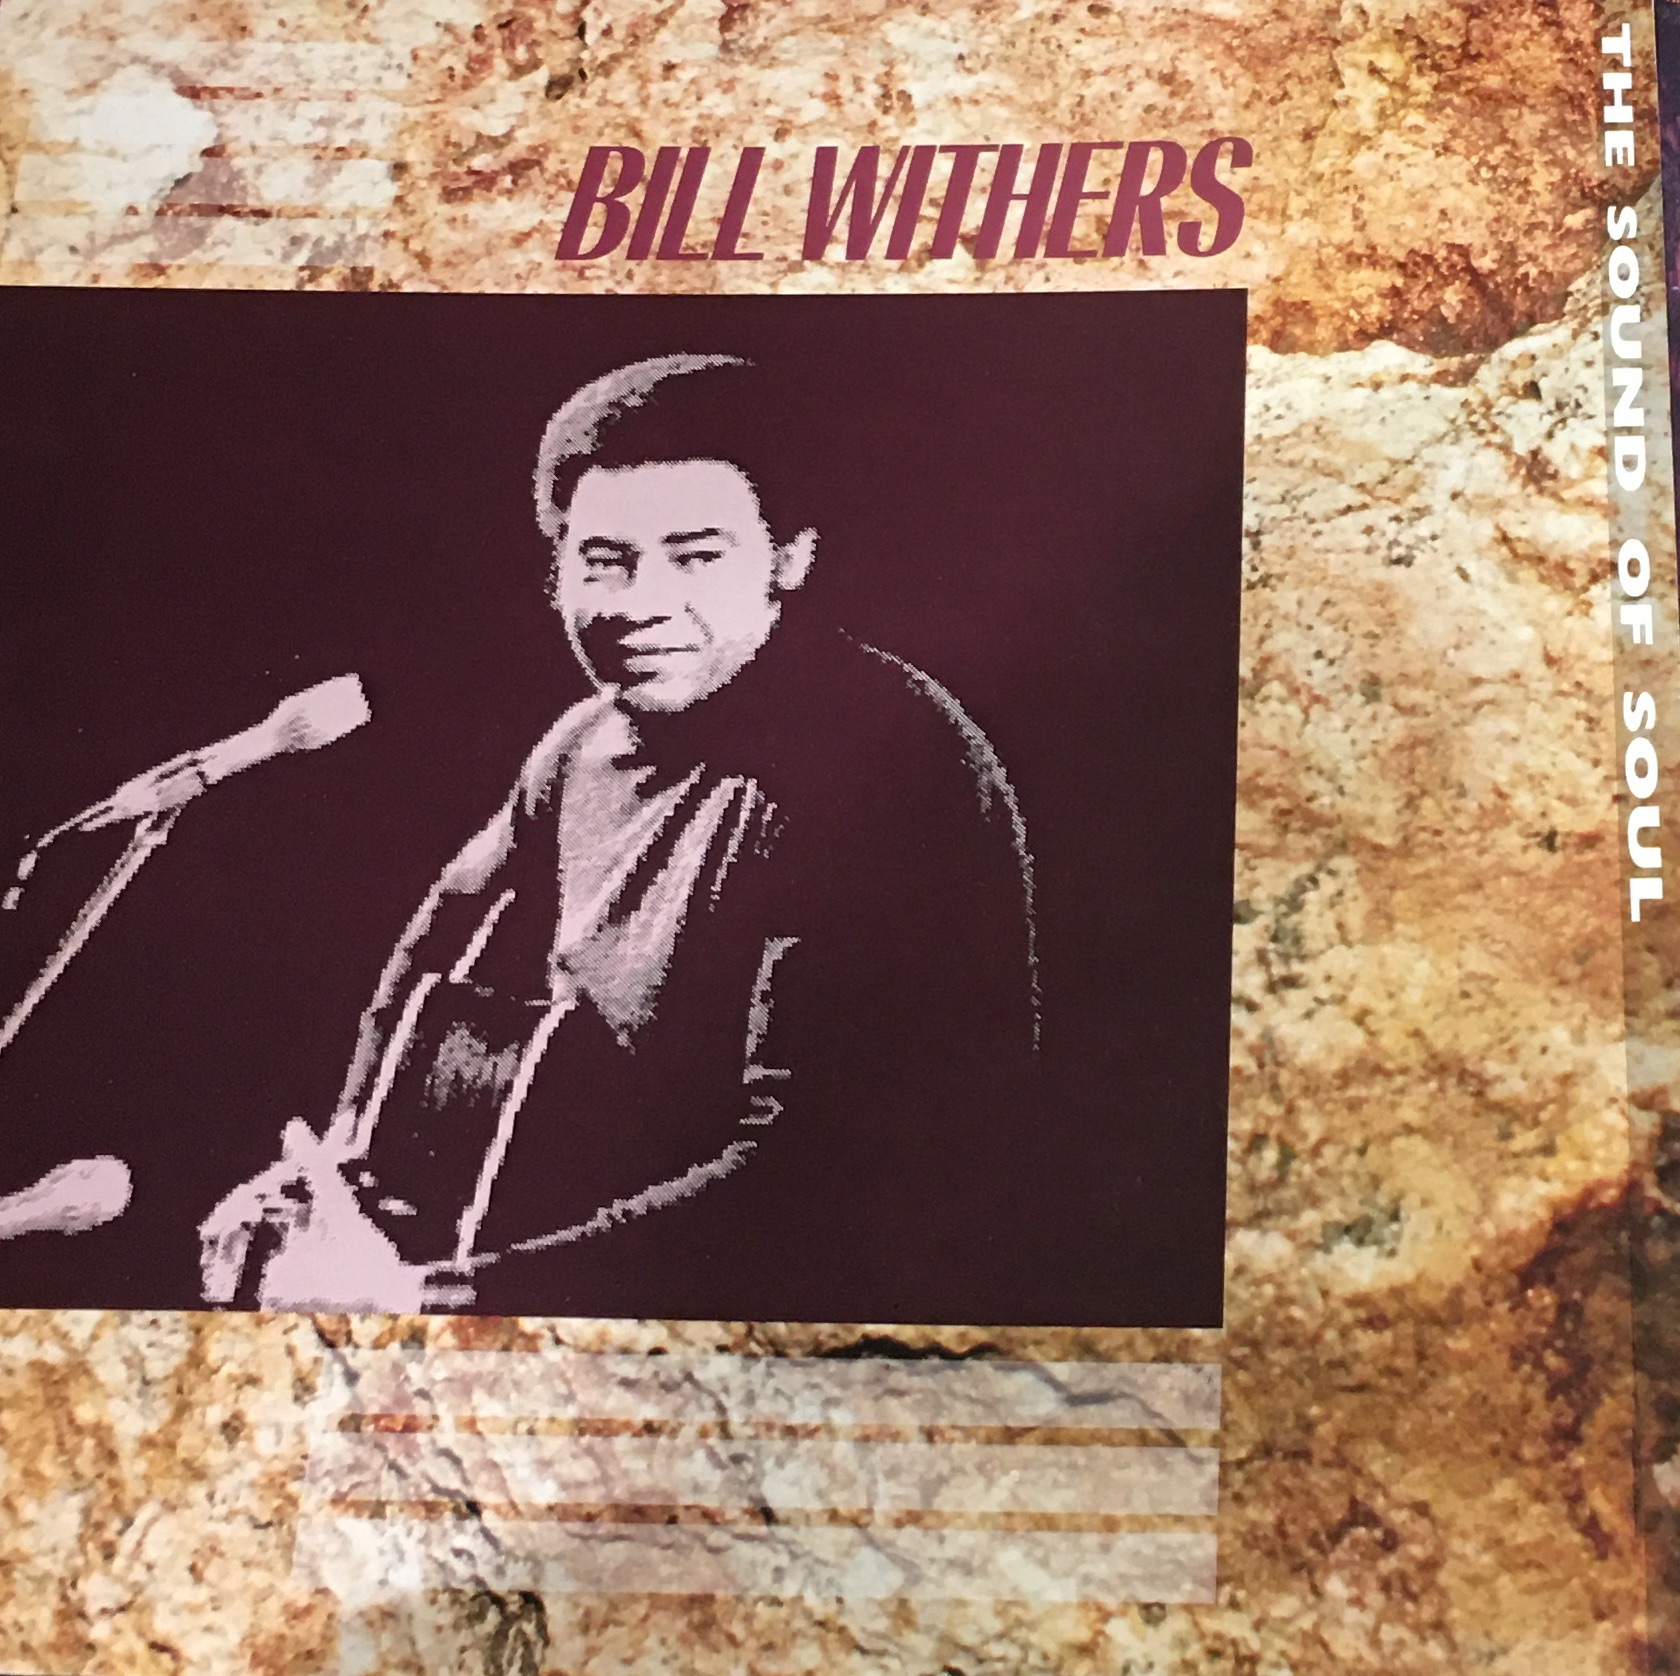 Bill Withers - Naked And Warm (2010, CDr)   Discogs